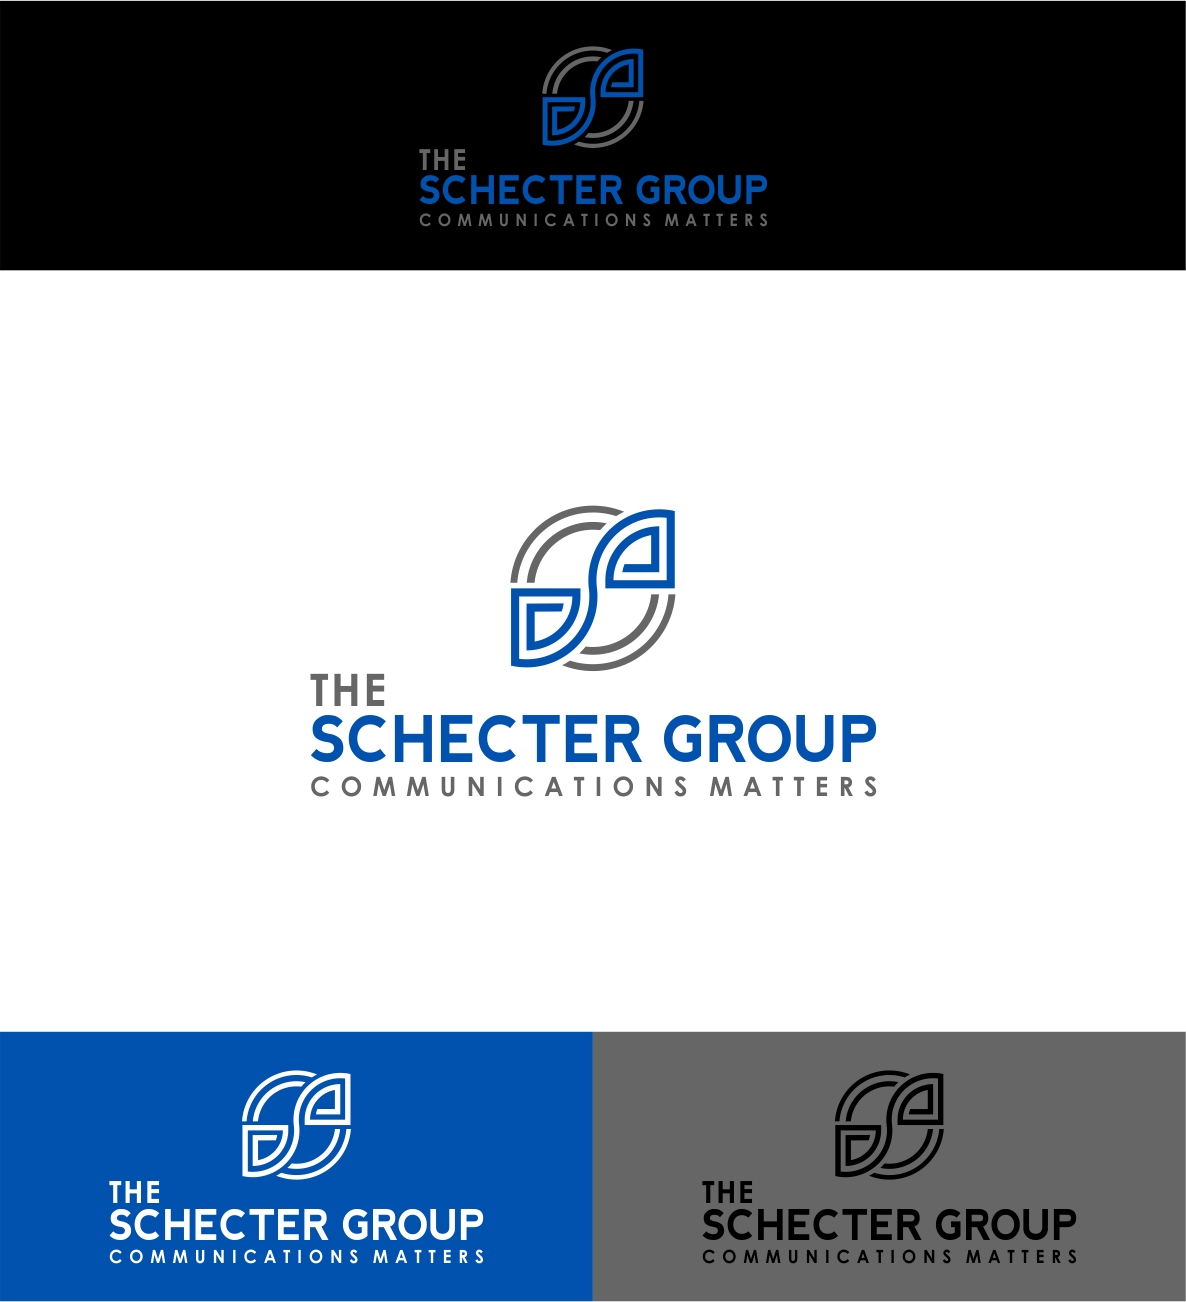 Logo Design by haidu - Entry No. 58 in the Logo Design Contest Inspiring Logo Design for The Schecter Group.